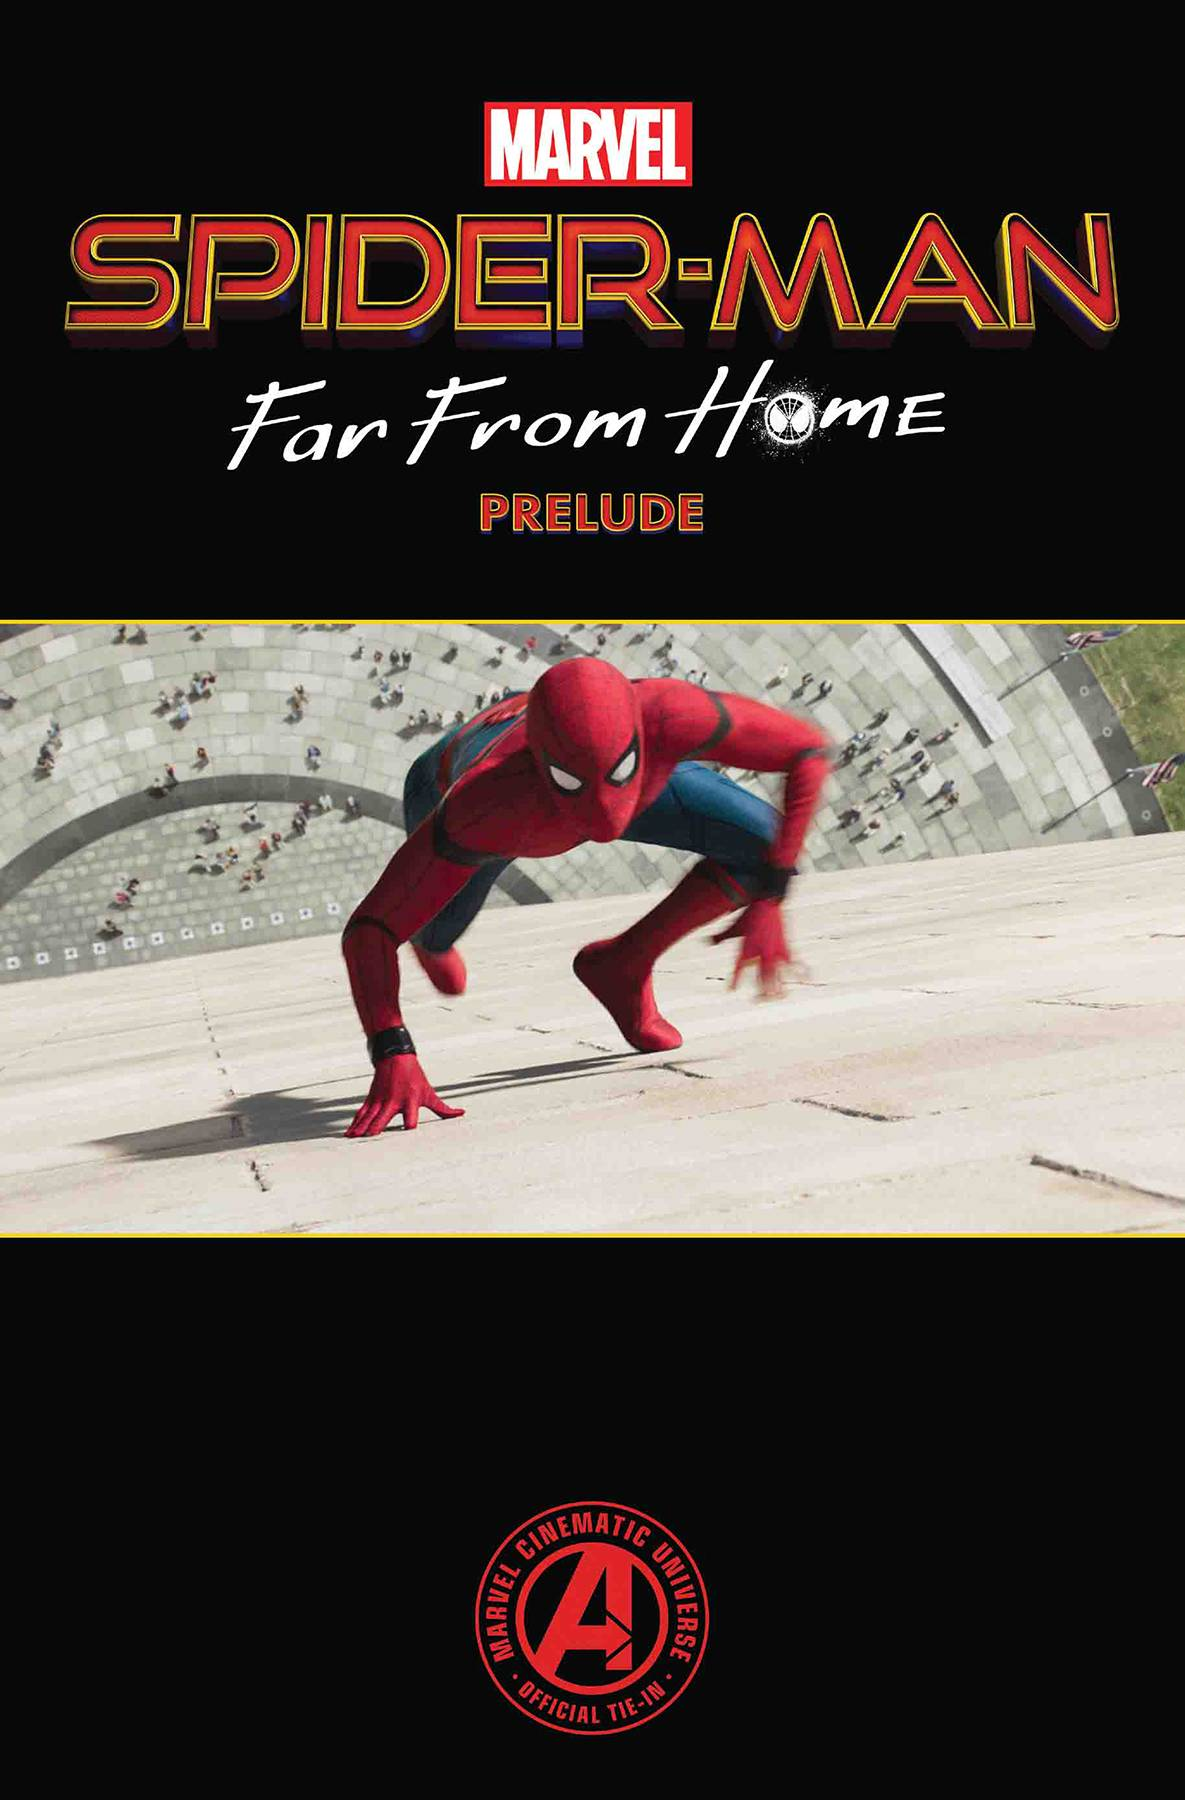 SPIDER-MAN FAR FROM HOME PRELUDE 2 of 2.jpg